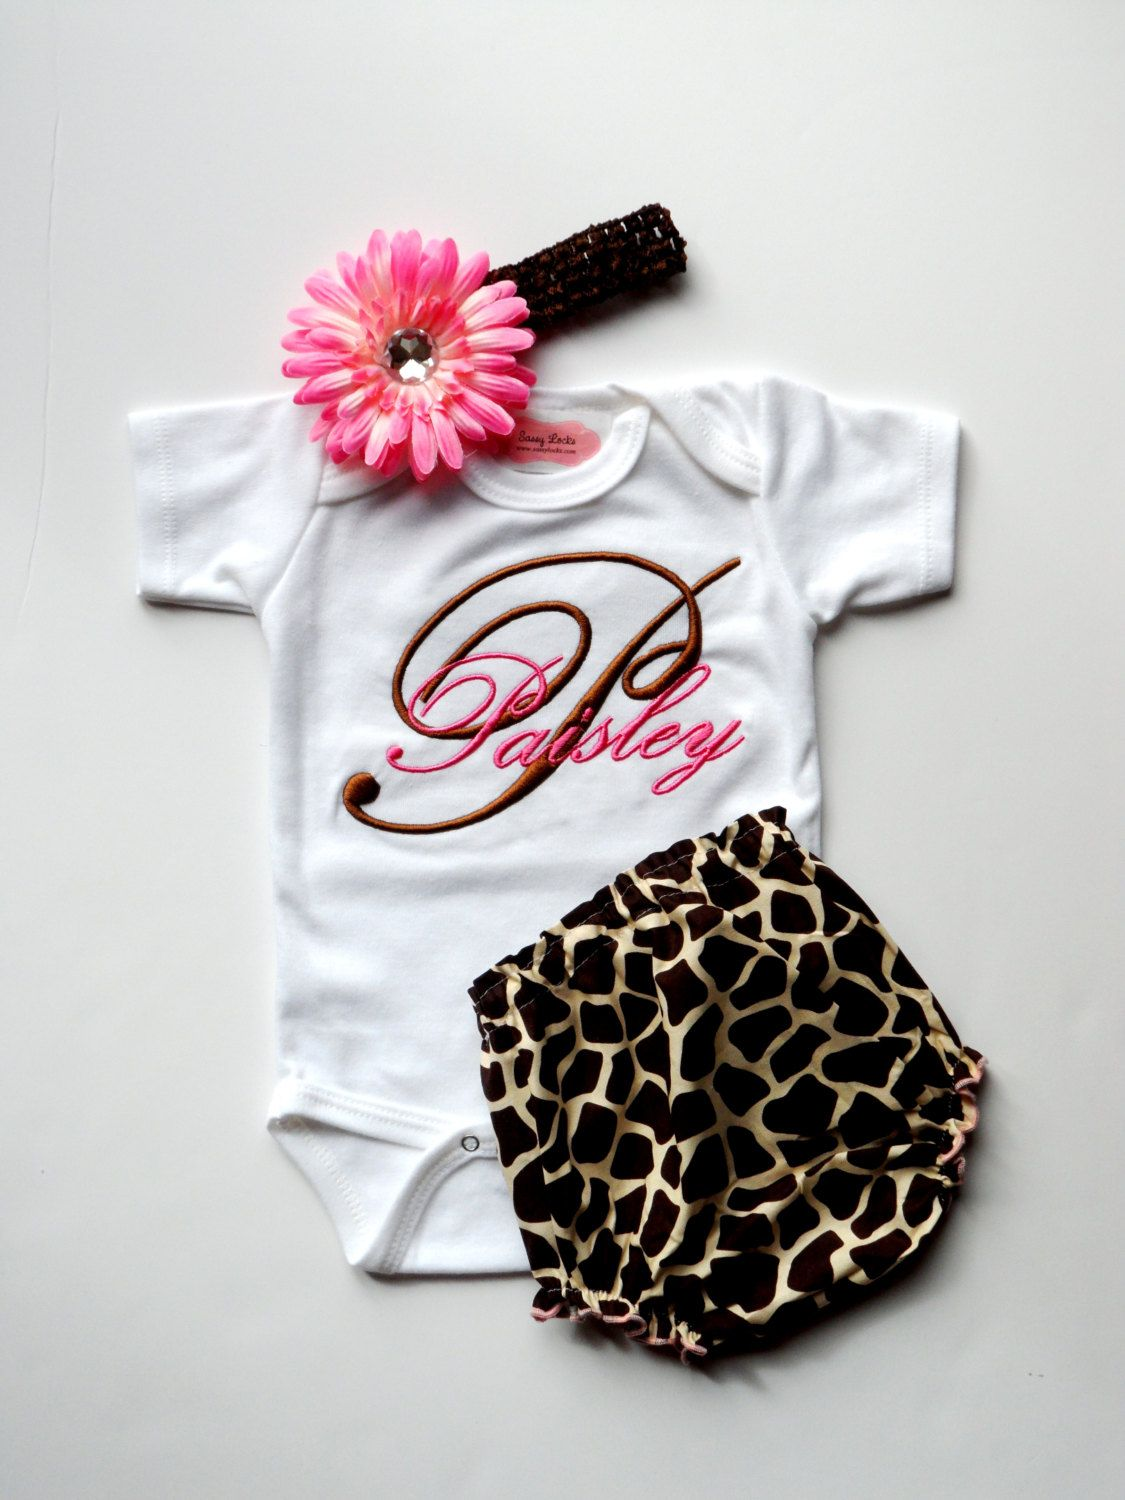 Personalizedbabygirlclothesnewborngirltakehomebylilmamas personalized baby girl clothes newborn girl take home outfit monogram baby girl outfit one piece giraffe diaper cover headband baby gift set by lilmamas on negle Choice Image